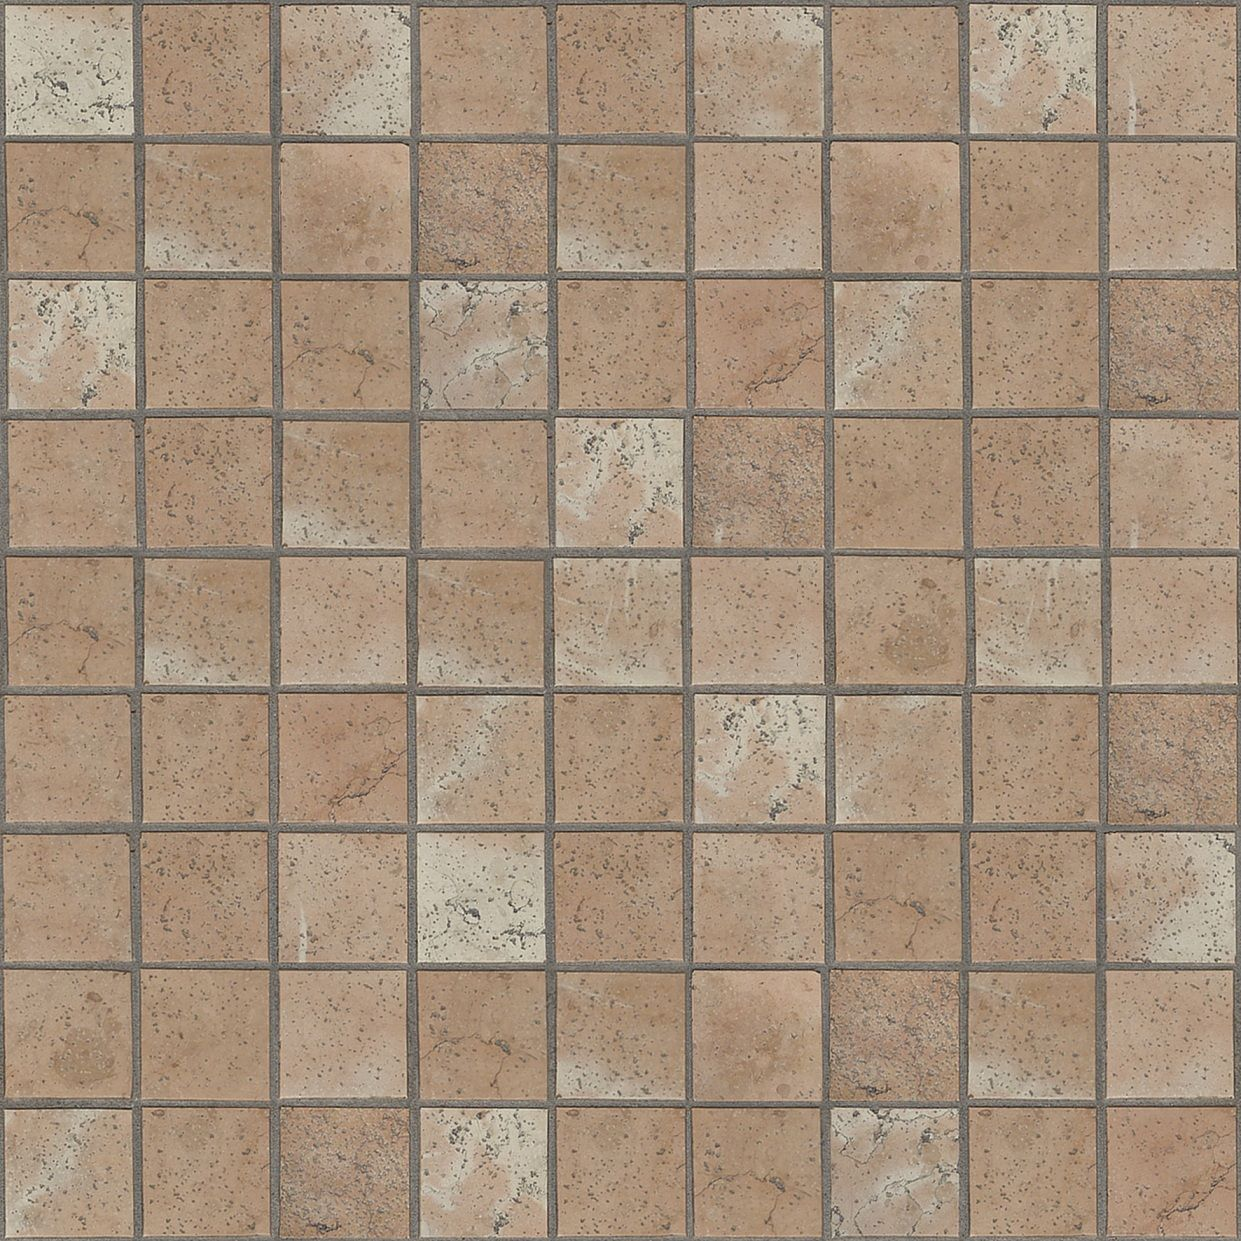 Bathroom Floor Tile Texture Seamless | Stuff to Buy | Pinterest ...